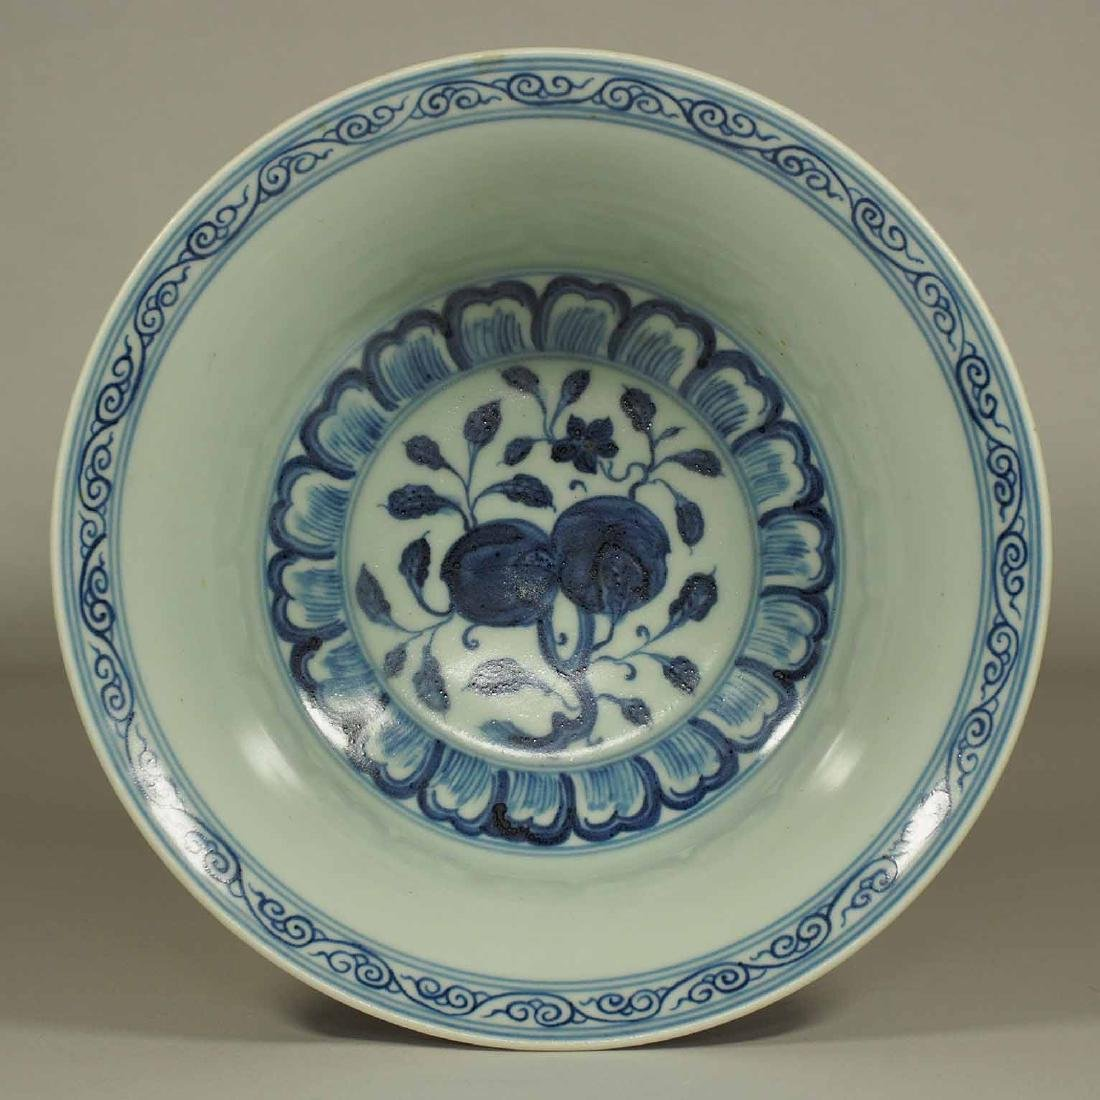 Washer with Peaches Design, Xuande Mark, Ming Dynasty